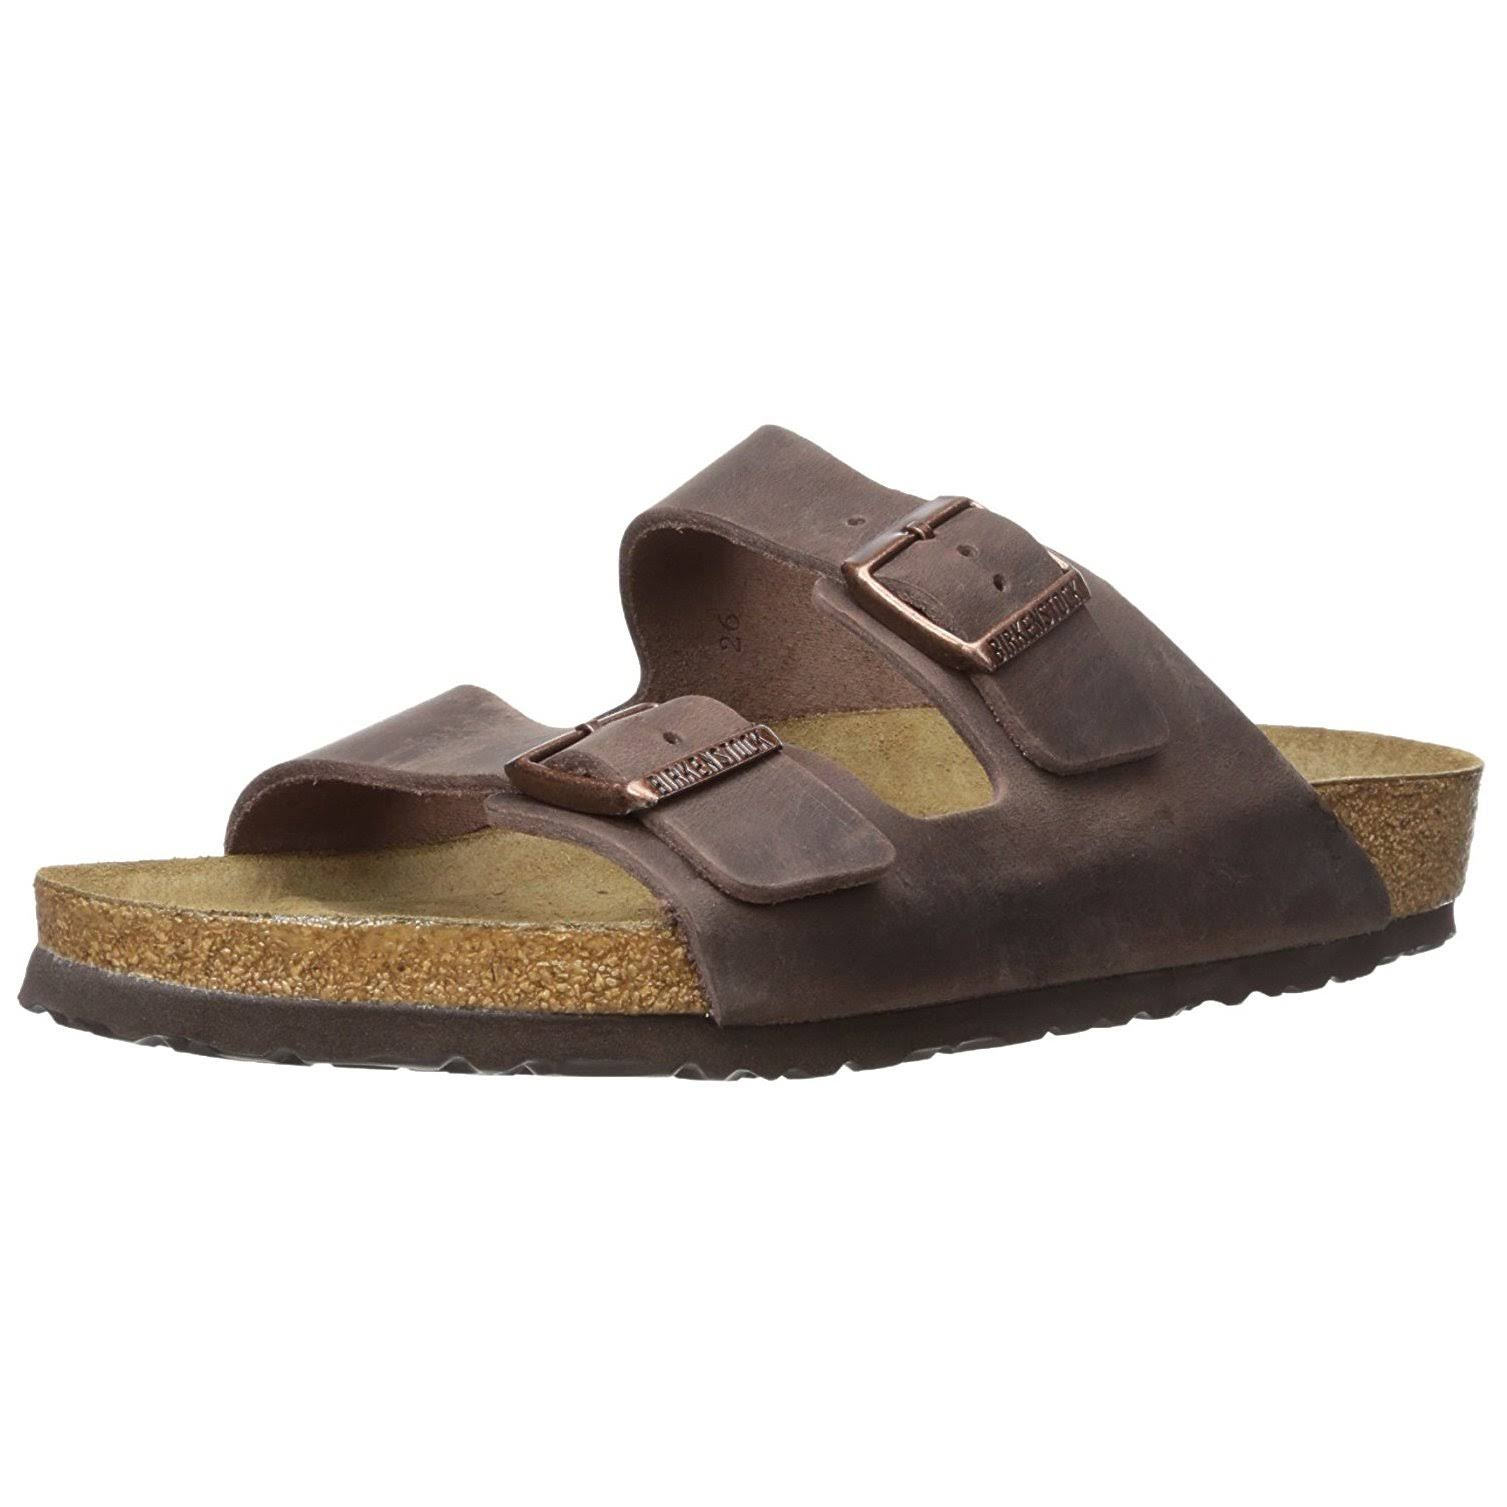 Birkenstock Unisex Arizona Habana Oiled Leather Sandals - Brown, 7.5 US